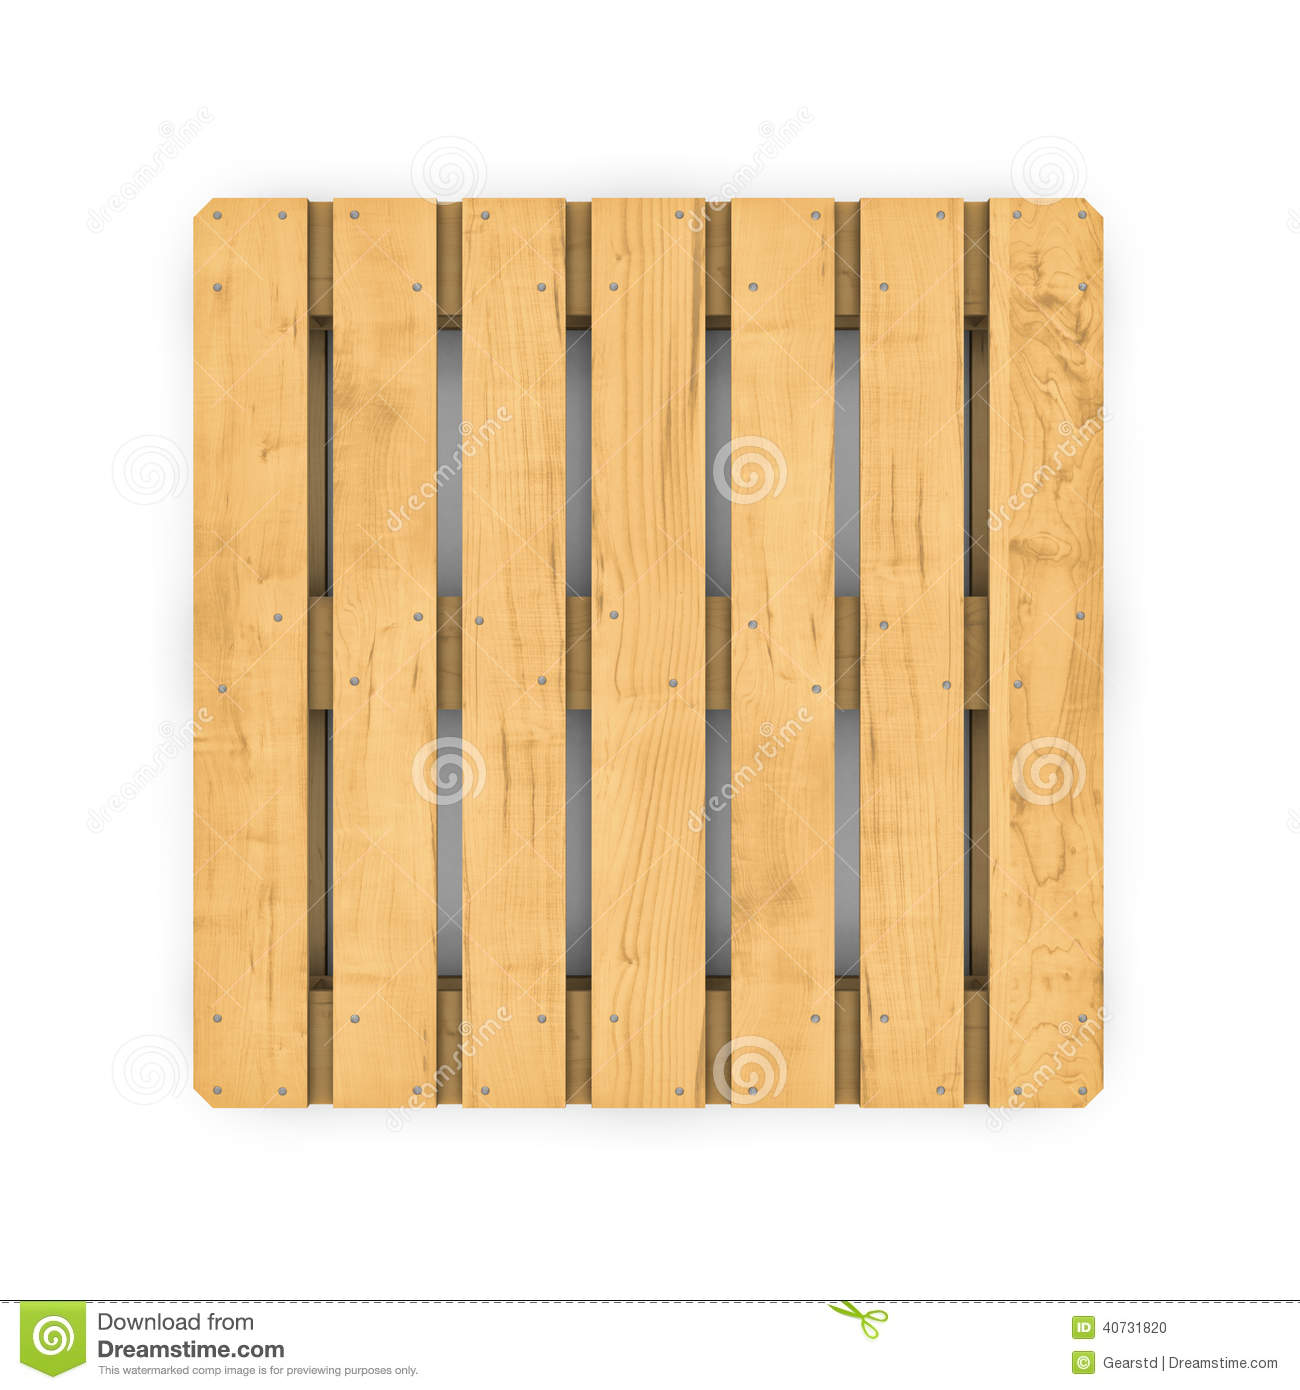 Palette En Bois D'isolement Sur Le Fond Blanc Illustration Stock Illustration du industrie  # Palette De Bois Gratuite